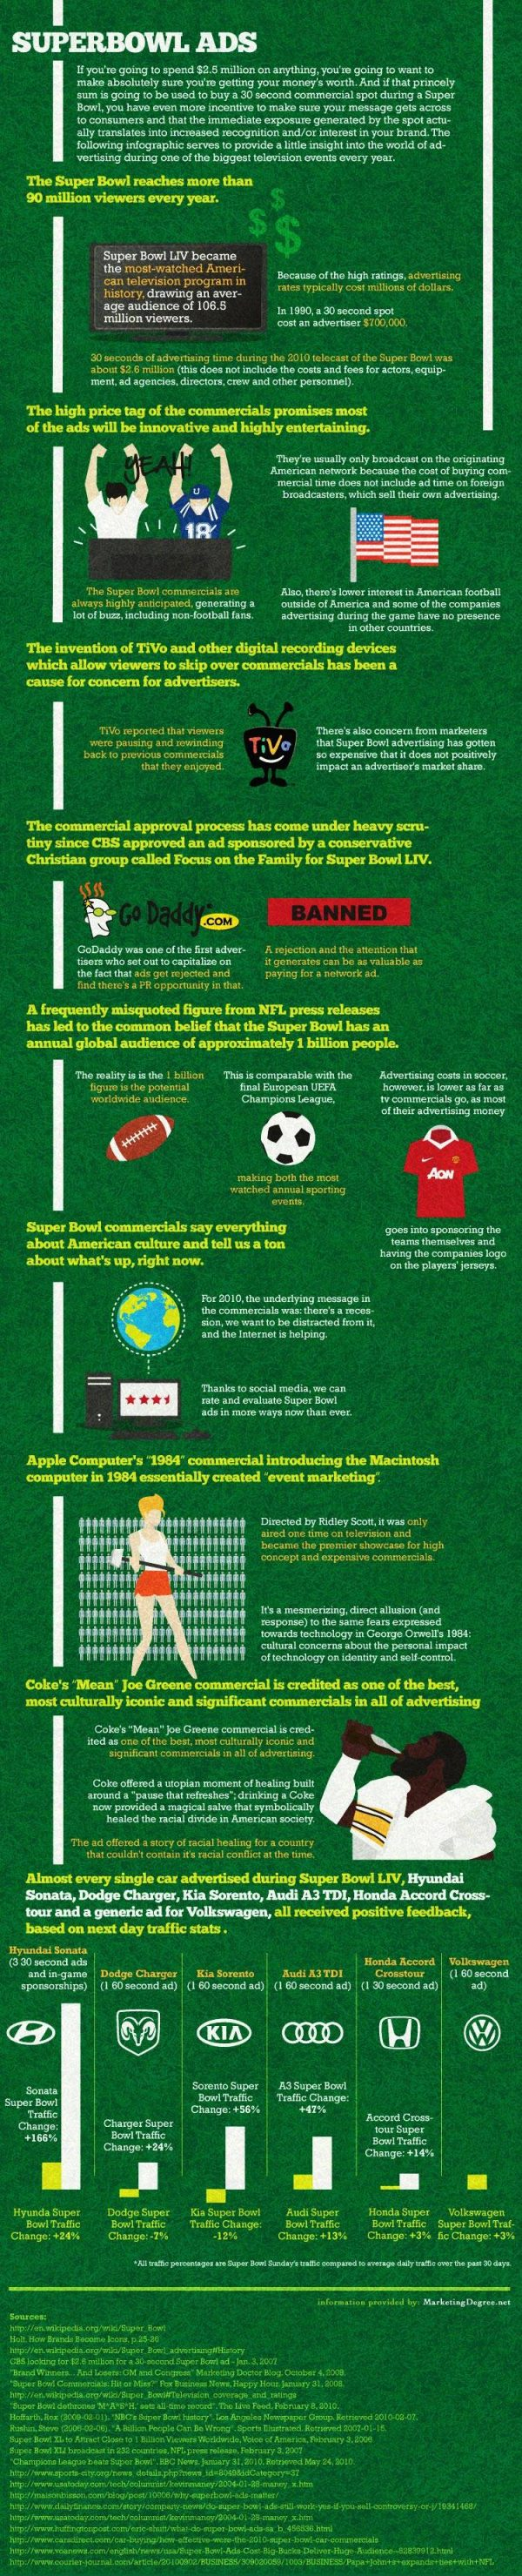 Super Bowl Ads (Infographic)